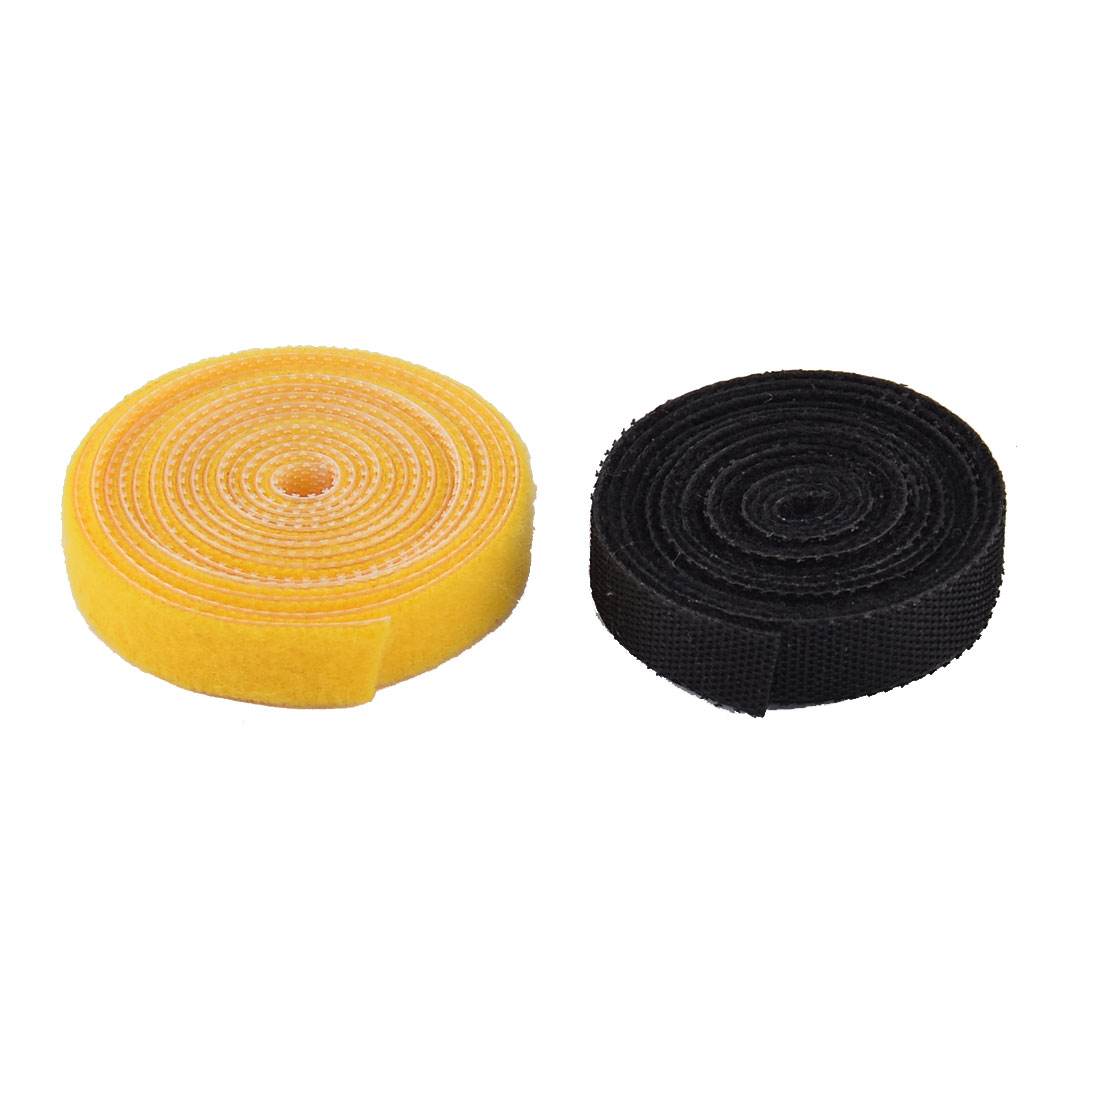 Nylon Household Sticky Self Adhesive Fastener Tape Roll Black Yellow 2 in 1